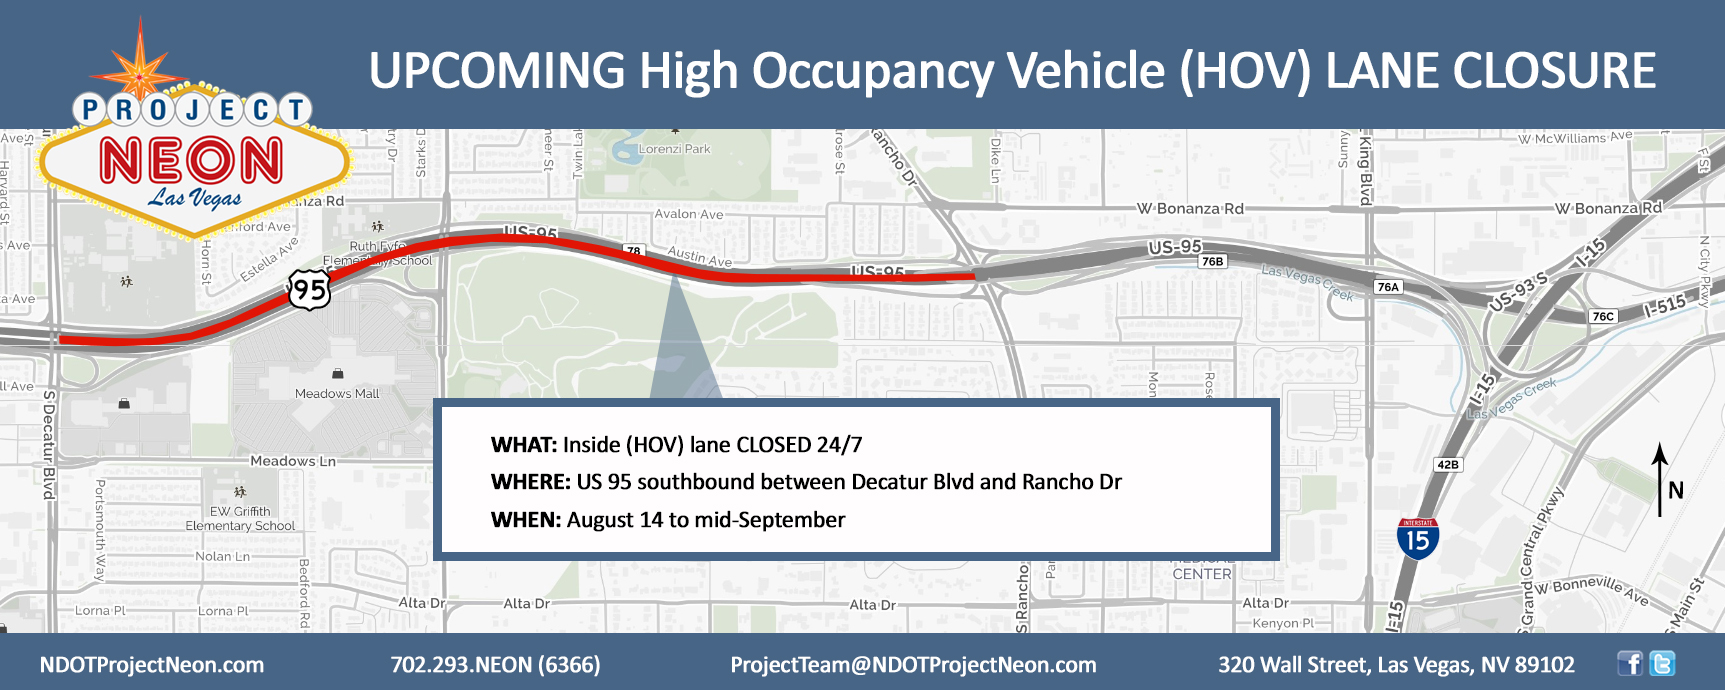 US 95 SB HOV Lane Closure_8.14.17